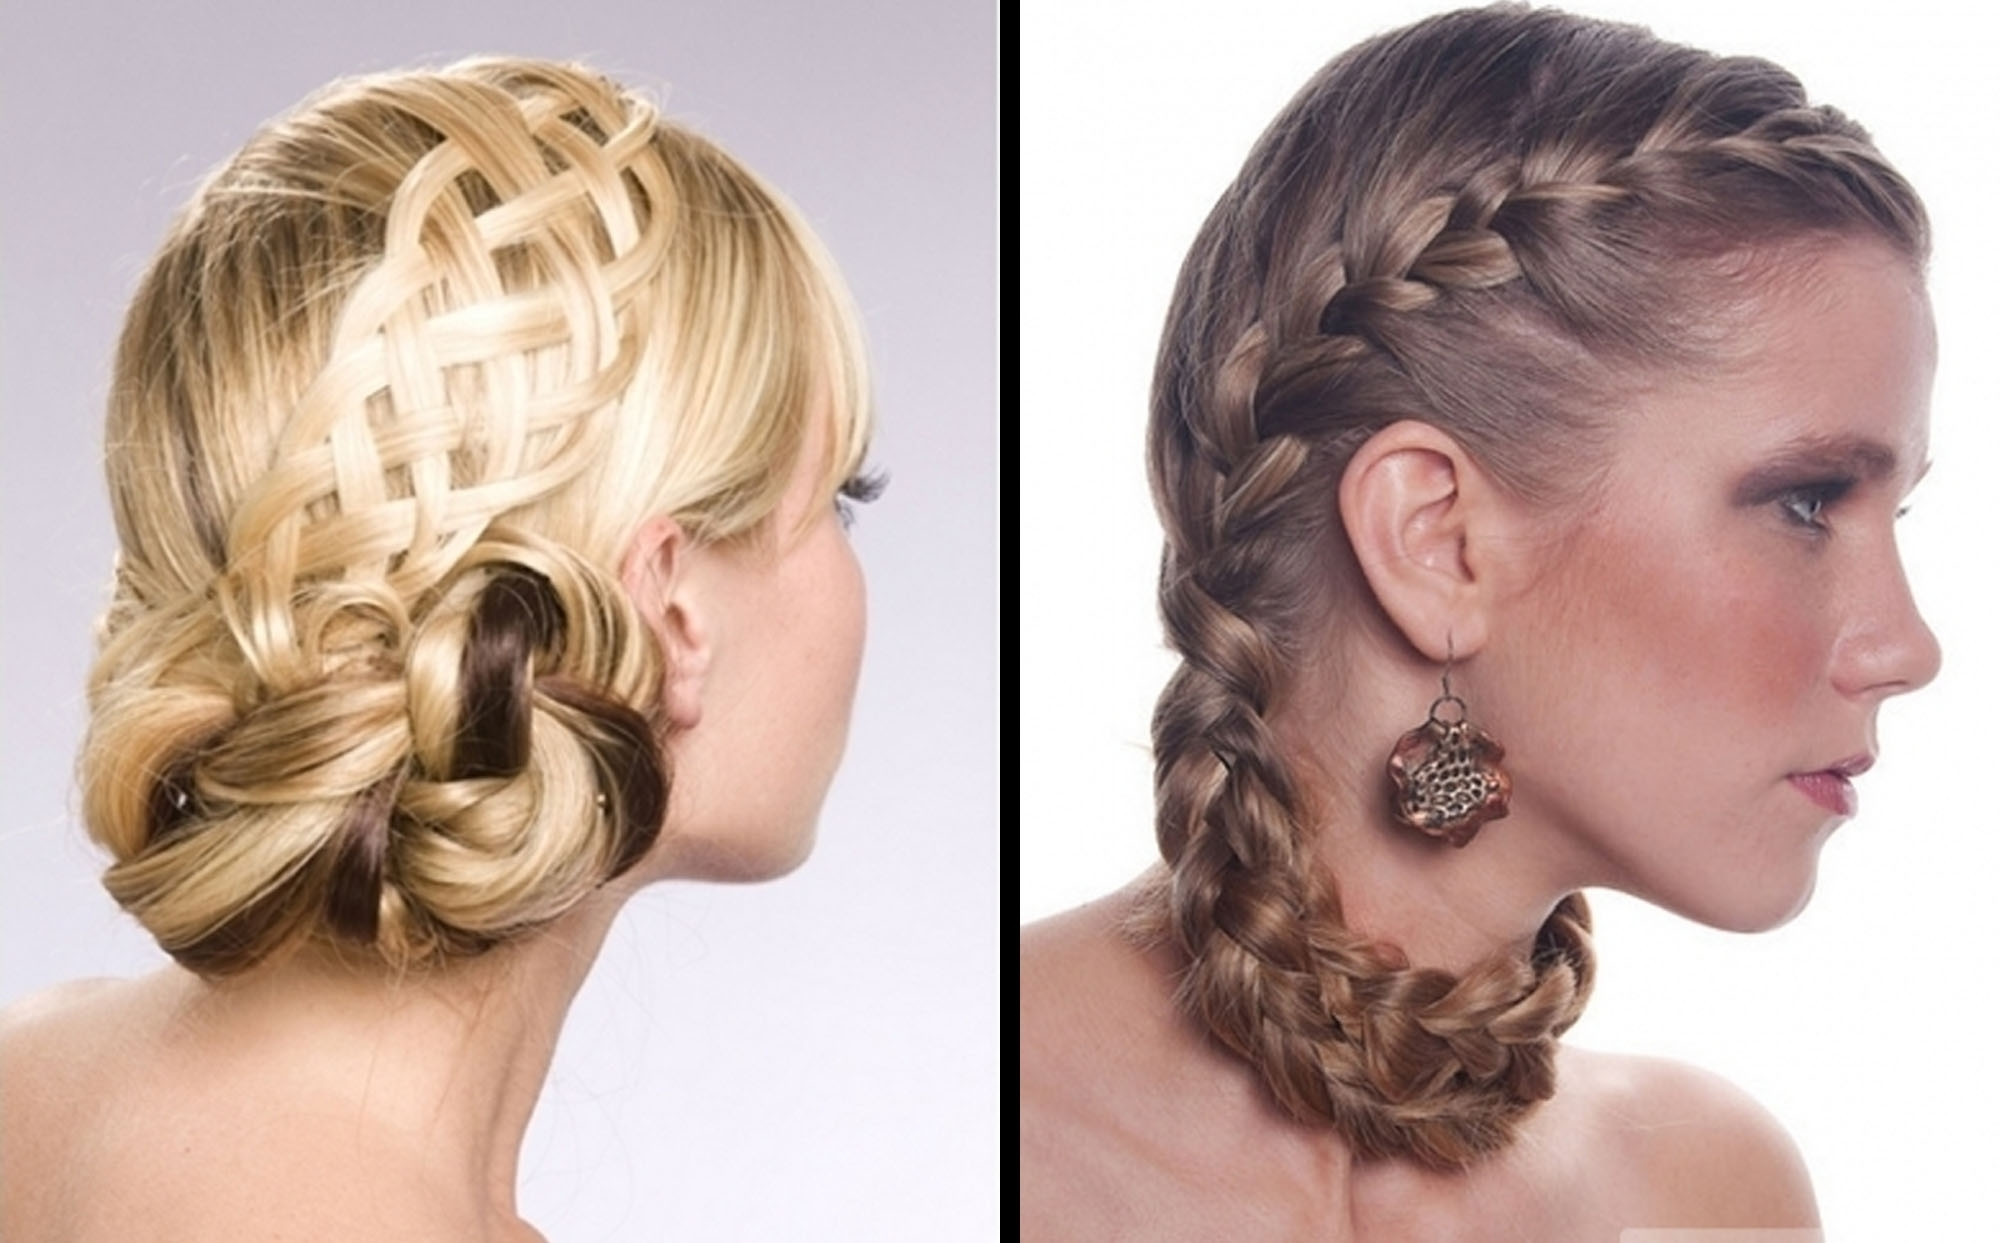 Hairstyles For Homecoming Updos Hair Braided Updo Hairstyles Salon Intended For Homecoming Updo Hairstyles For Long Hair (View 9 of 15)